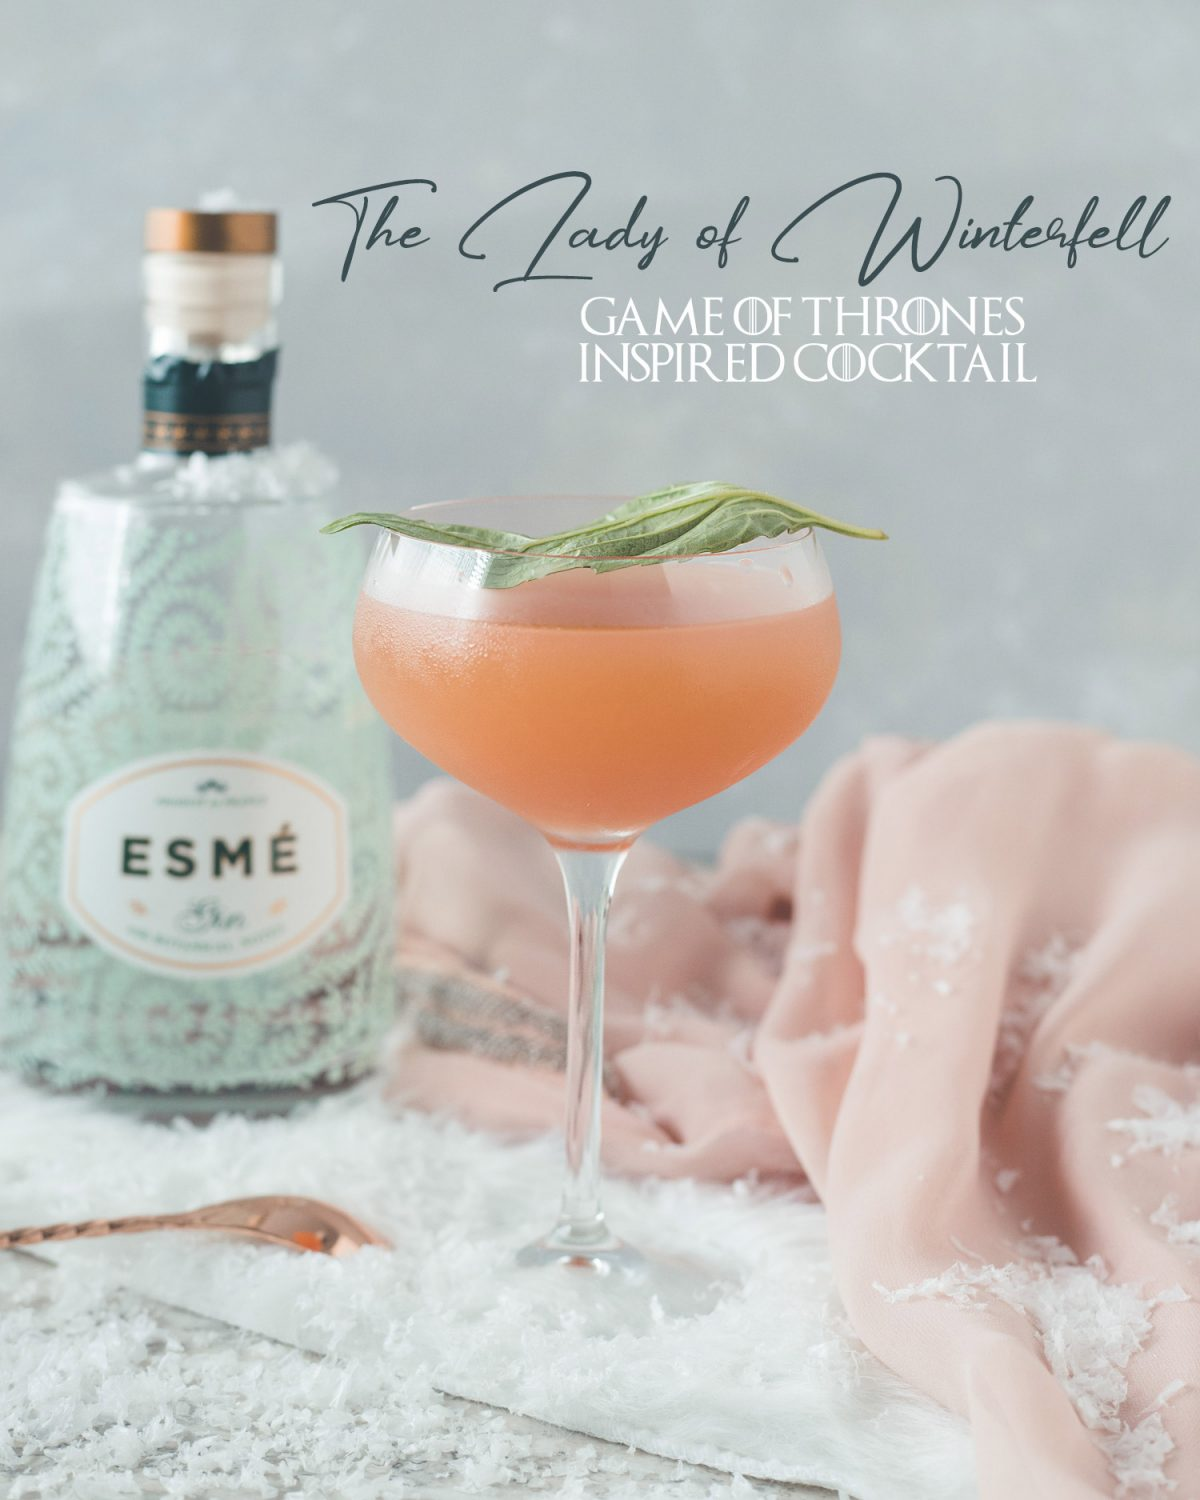 This Lady of Winterfell cocktail is a Game of Thrones inspired cocktail is perfect for a Game of Thrones party. This grapefruit and gin cocktail is muddled with basil to be a delightfully refreshing pink martini recipe. Inspired by one of my favorite characters, Sansa Stark and her pink King's Landing dress. #ElleTalk #GameofThrones #GameofThronesParty #Gin #GinCocktail #CocktailRecipe #DrinkRecipe #Grapefruit